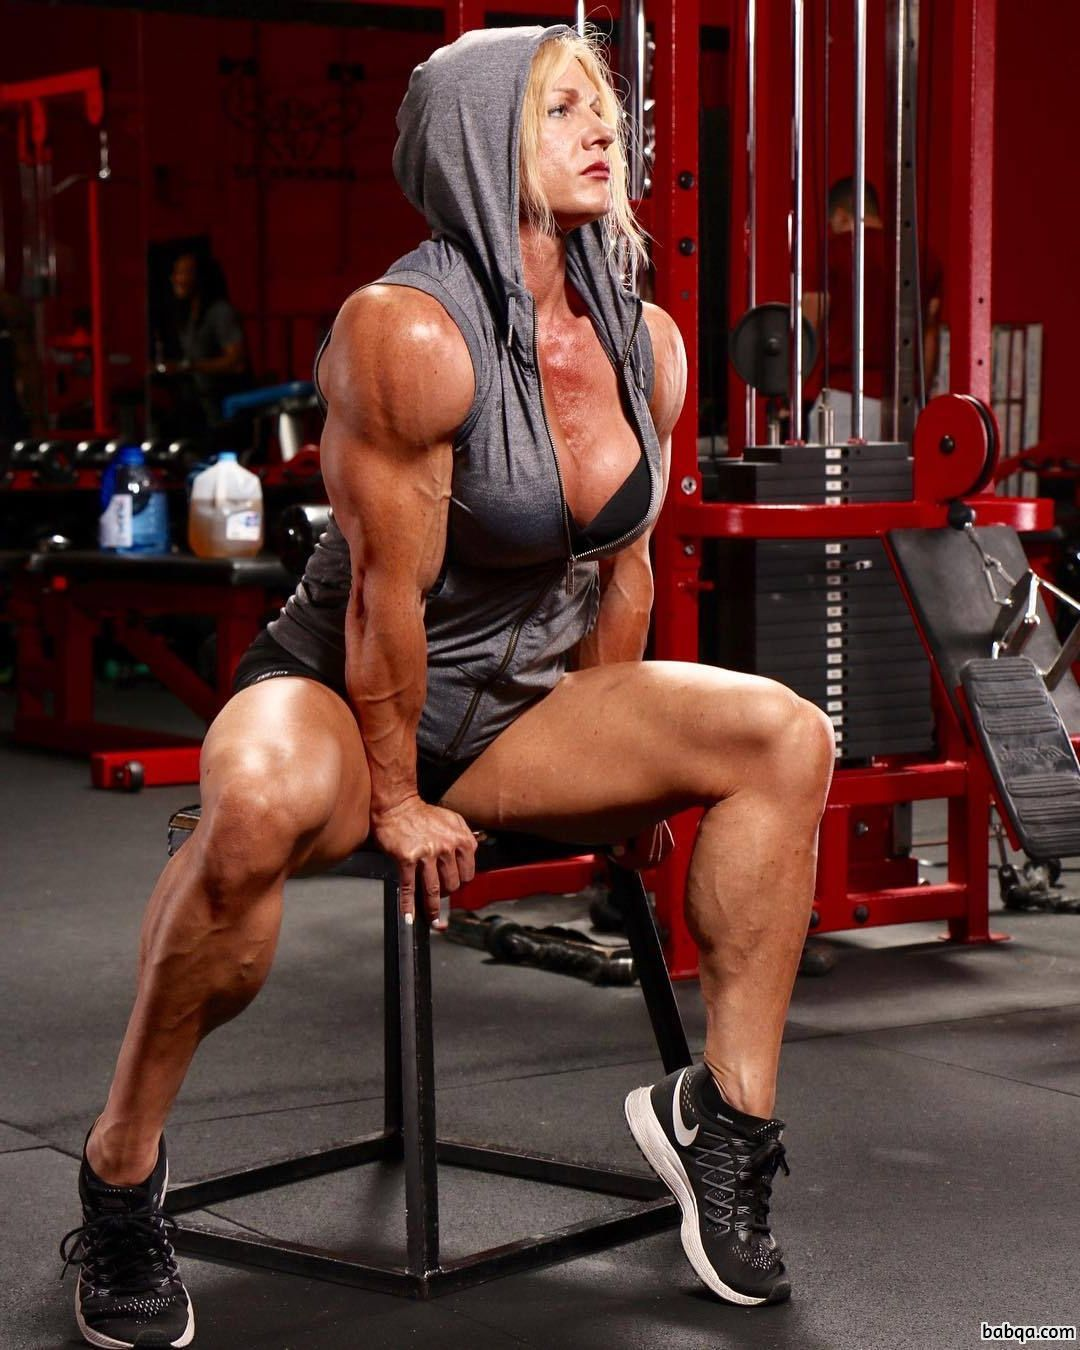 beautiful woman with muscle body and muscle arms pic from flickr